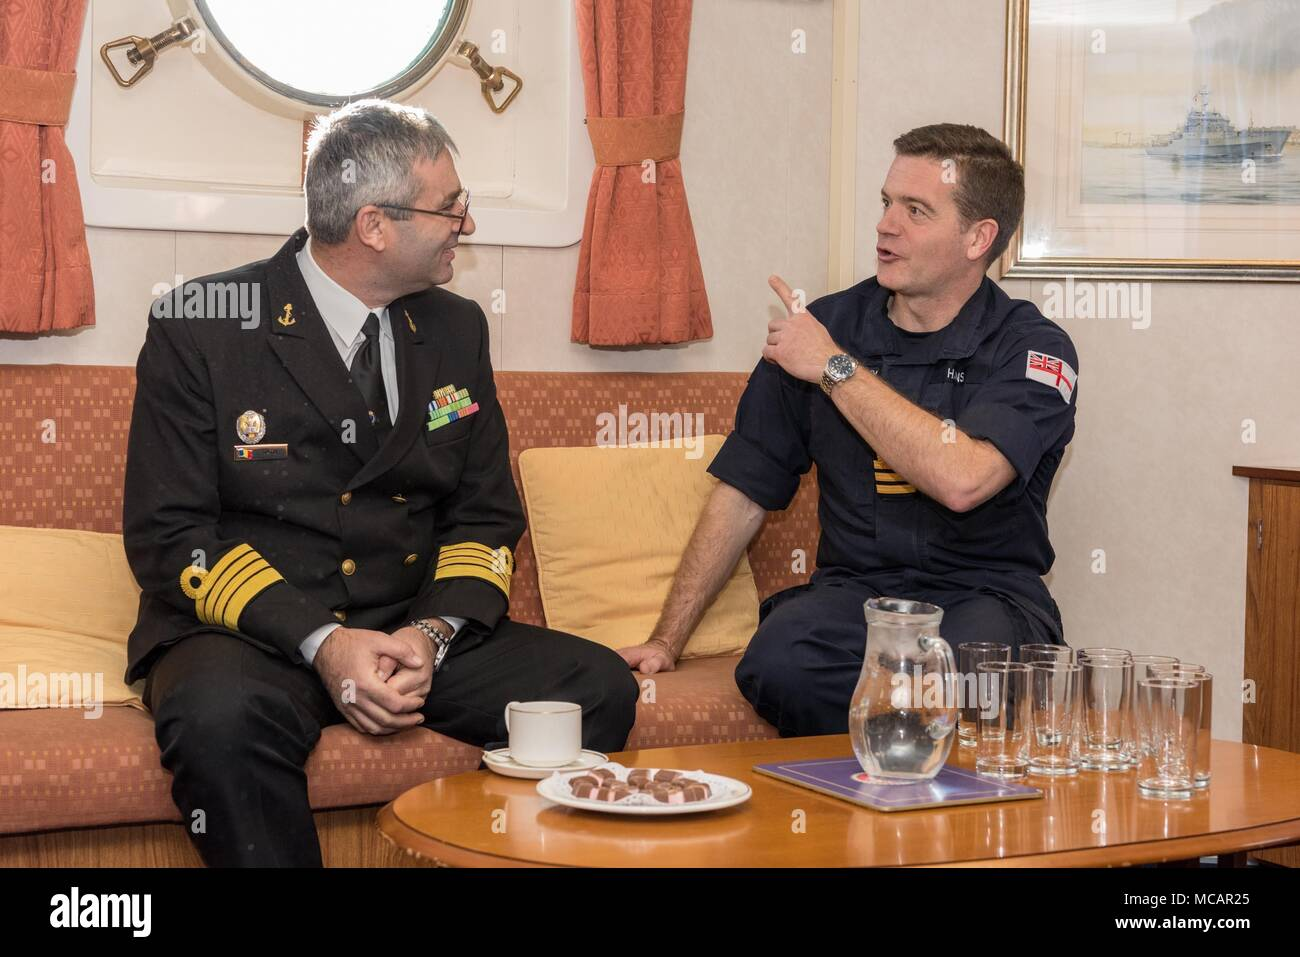 CONSTANTA, Romania, Feb 1. 2018 SNMCMG2 Commander, Justin Hains speaks with leadership from the Romanian Navy Hydrographic and Mine Warfare officers for an official visit aboard HMS Enterprise while the group is import Constanta, Romania February 1-4. Stock Photo